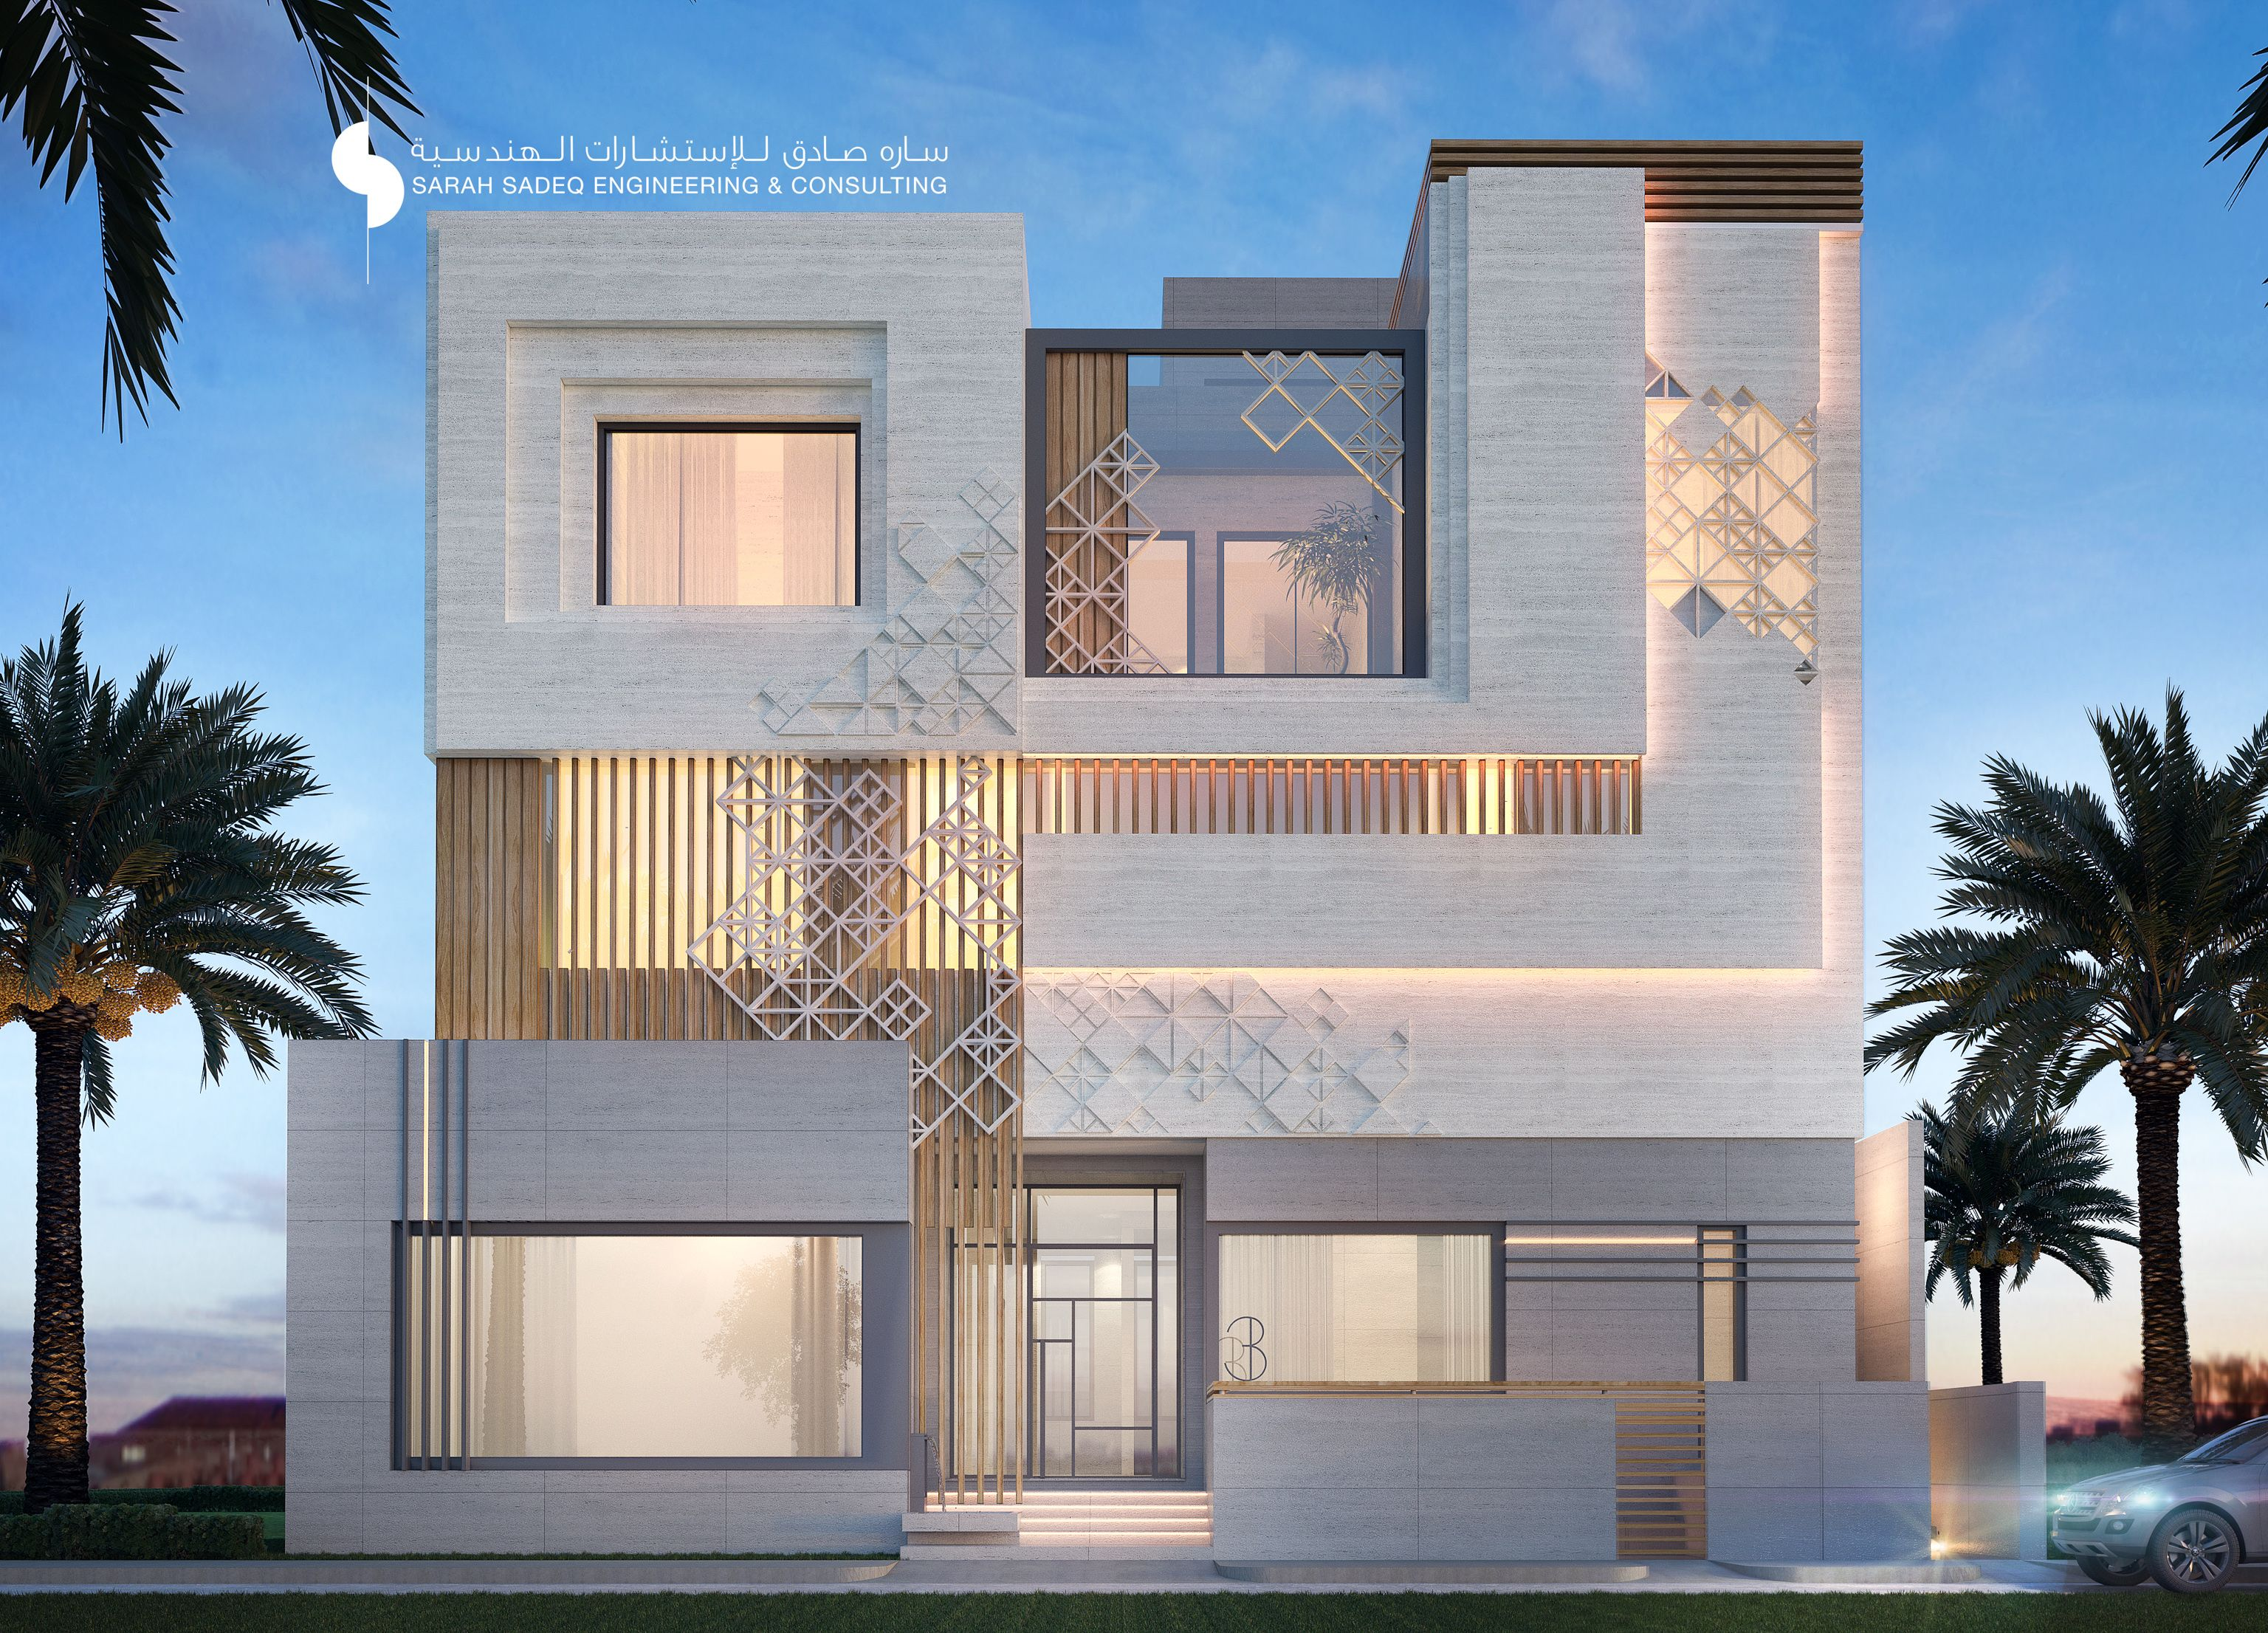 Private villa kuwait 400 m by sarah sadeq architects for Apartment villa design